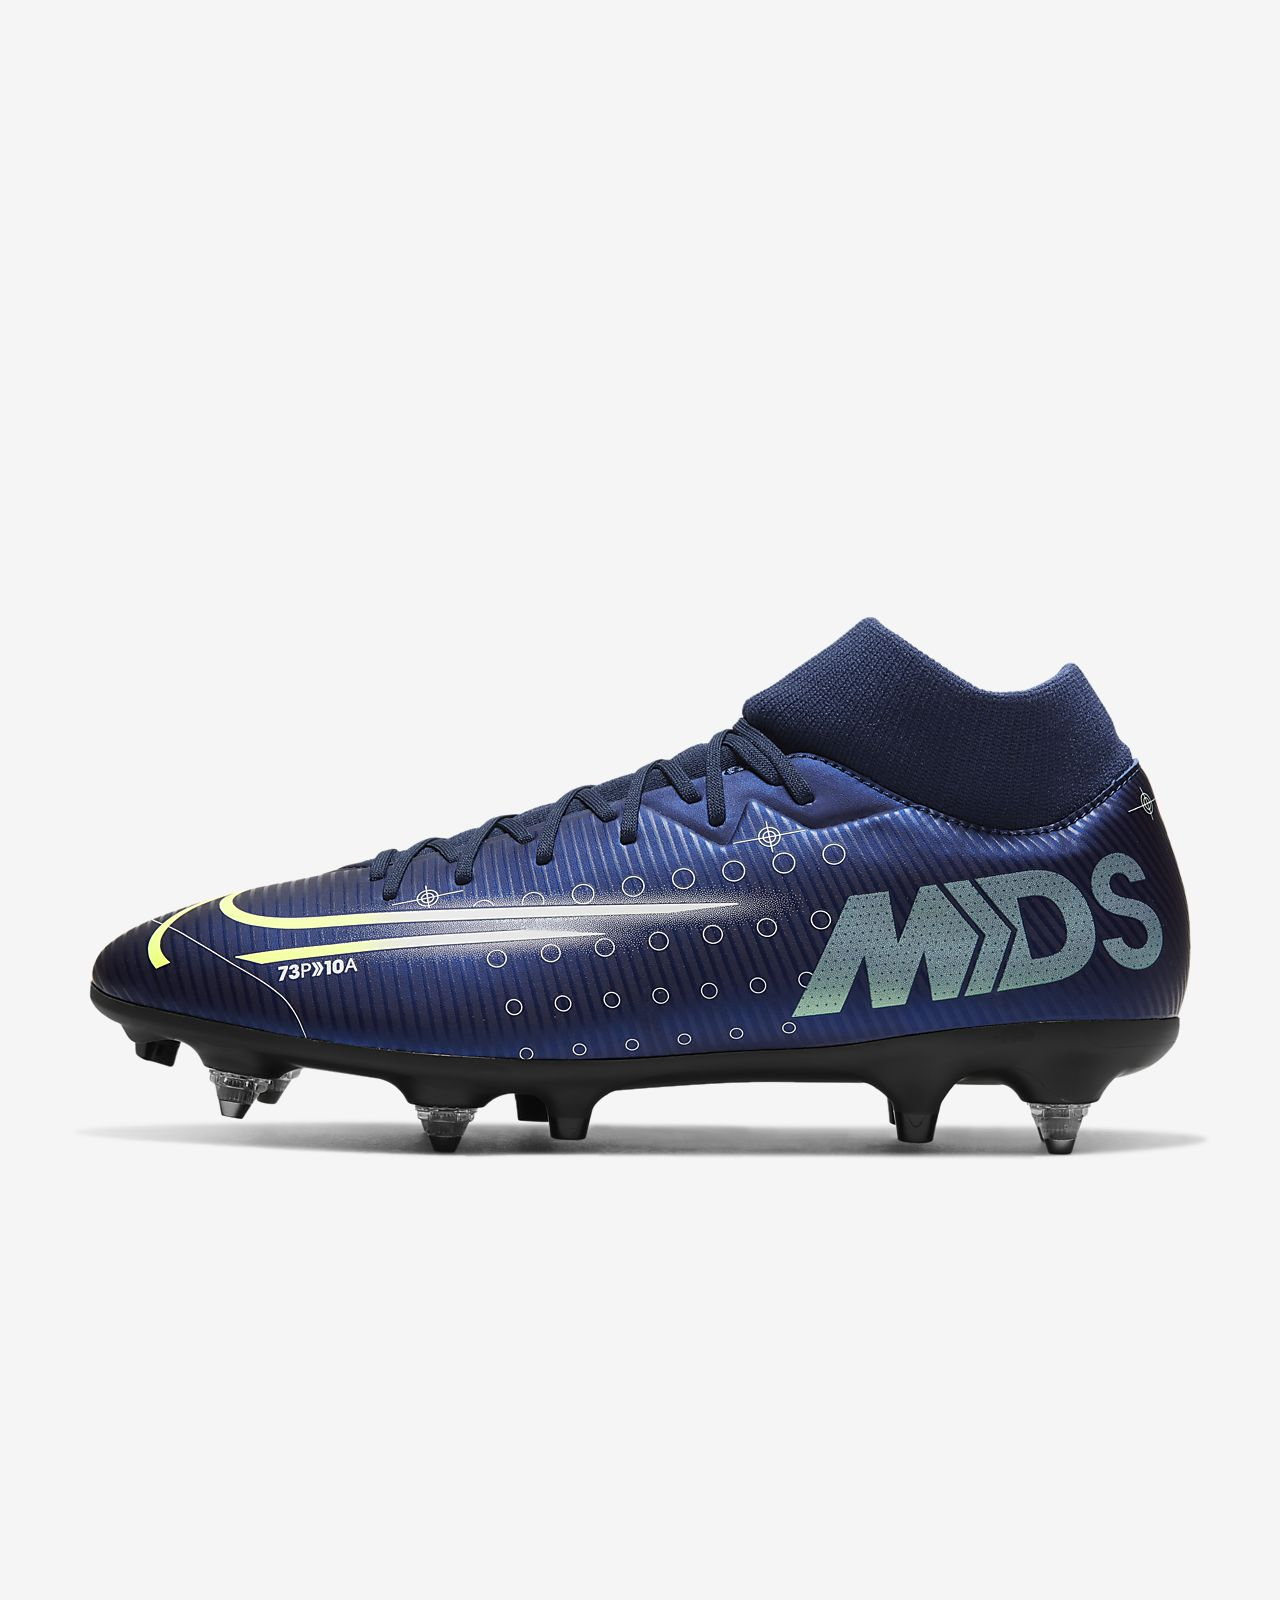 Chaussure de football à crampons pour terrain gras Nike Mercurial Superfly 7 Academy MDS SG-PRO Anti-Clog Traction